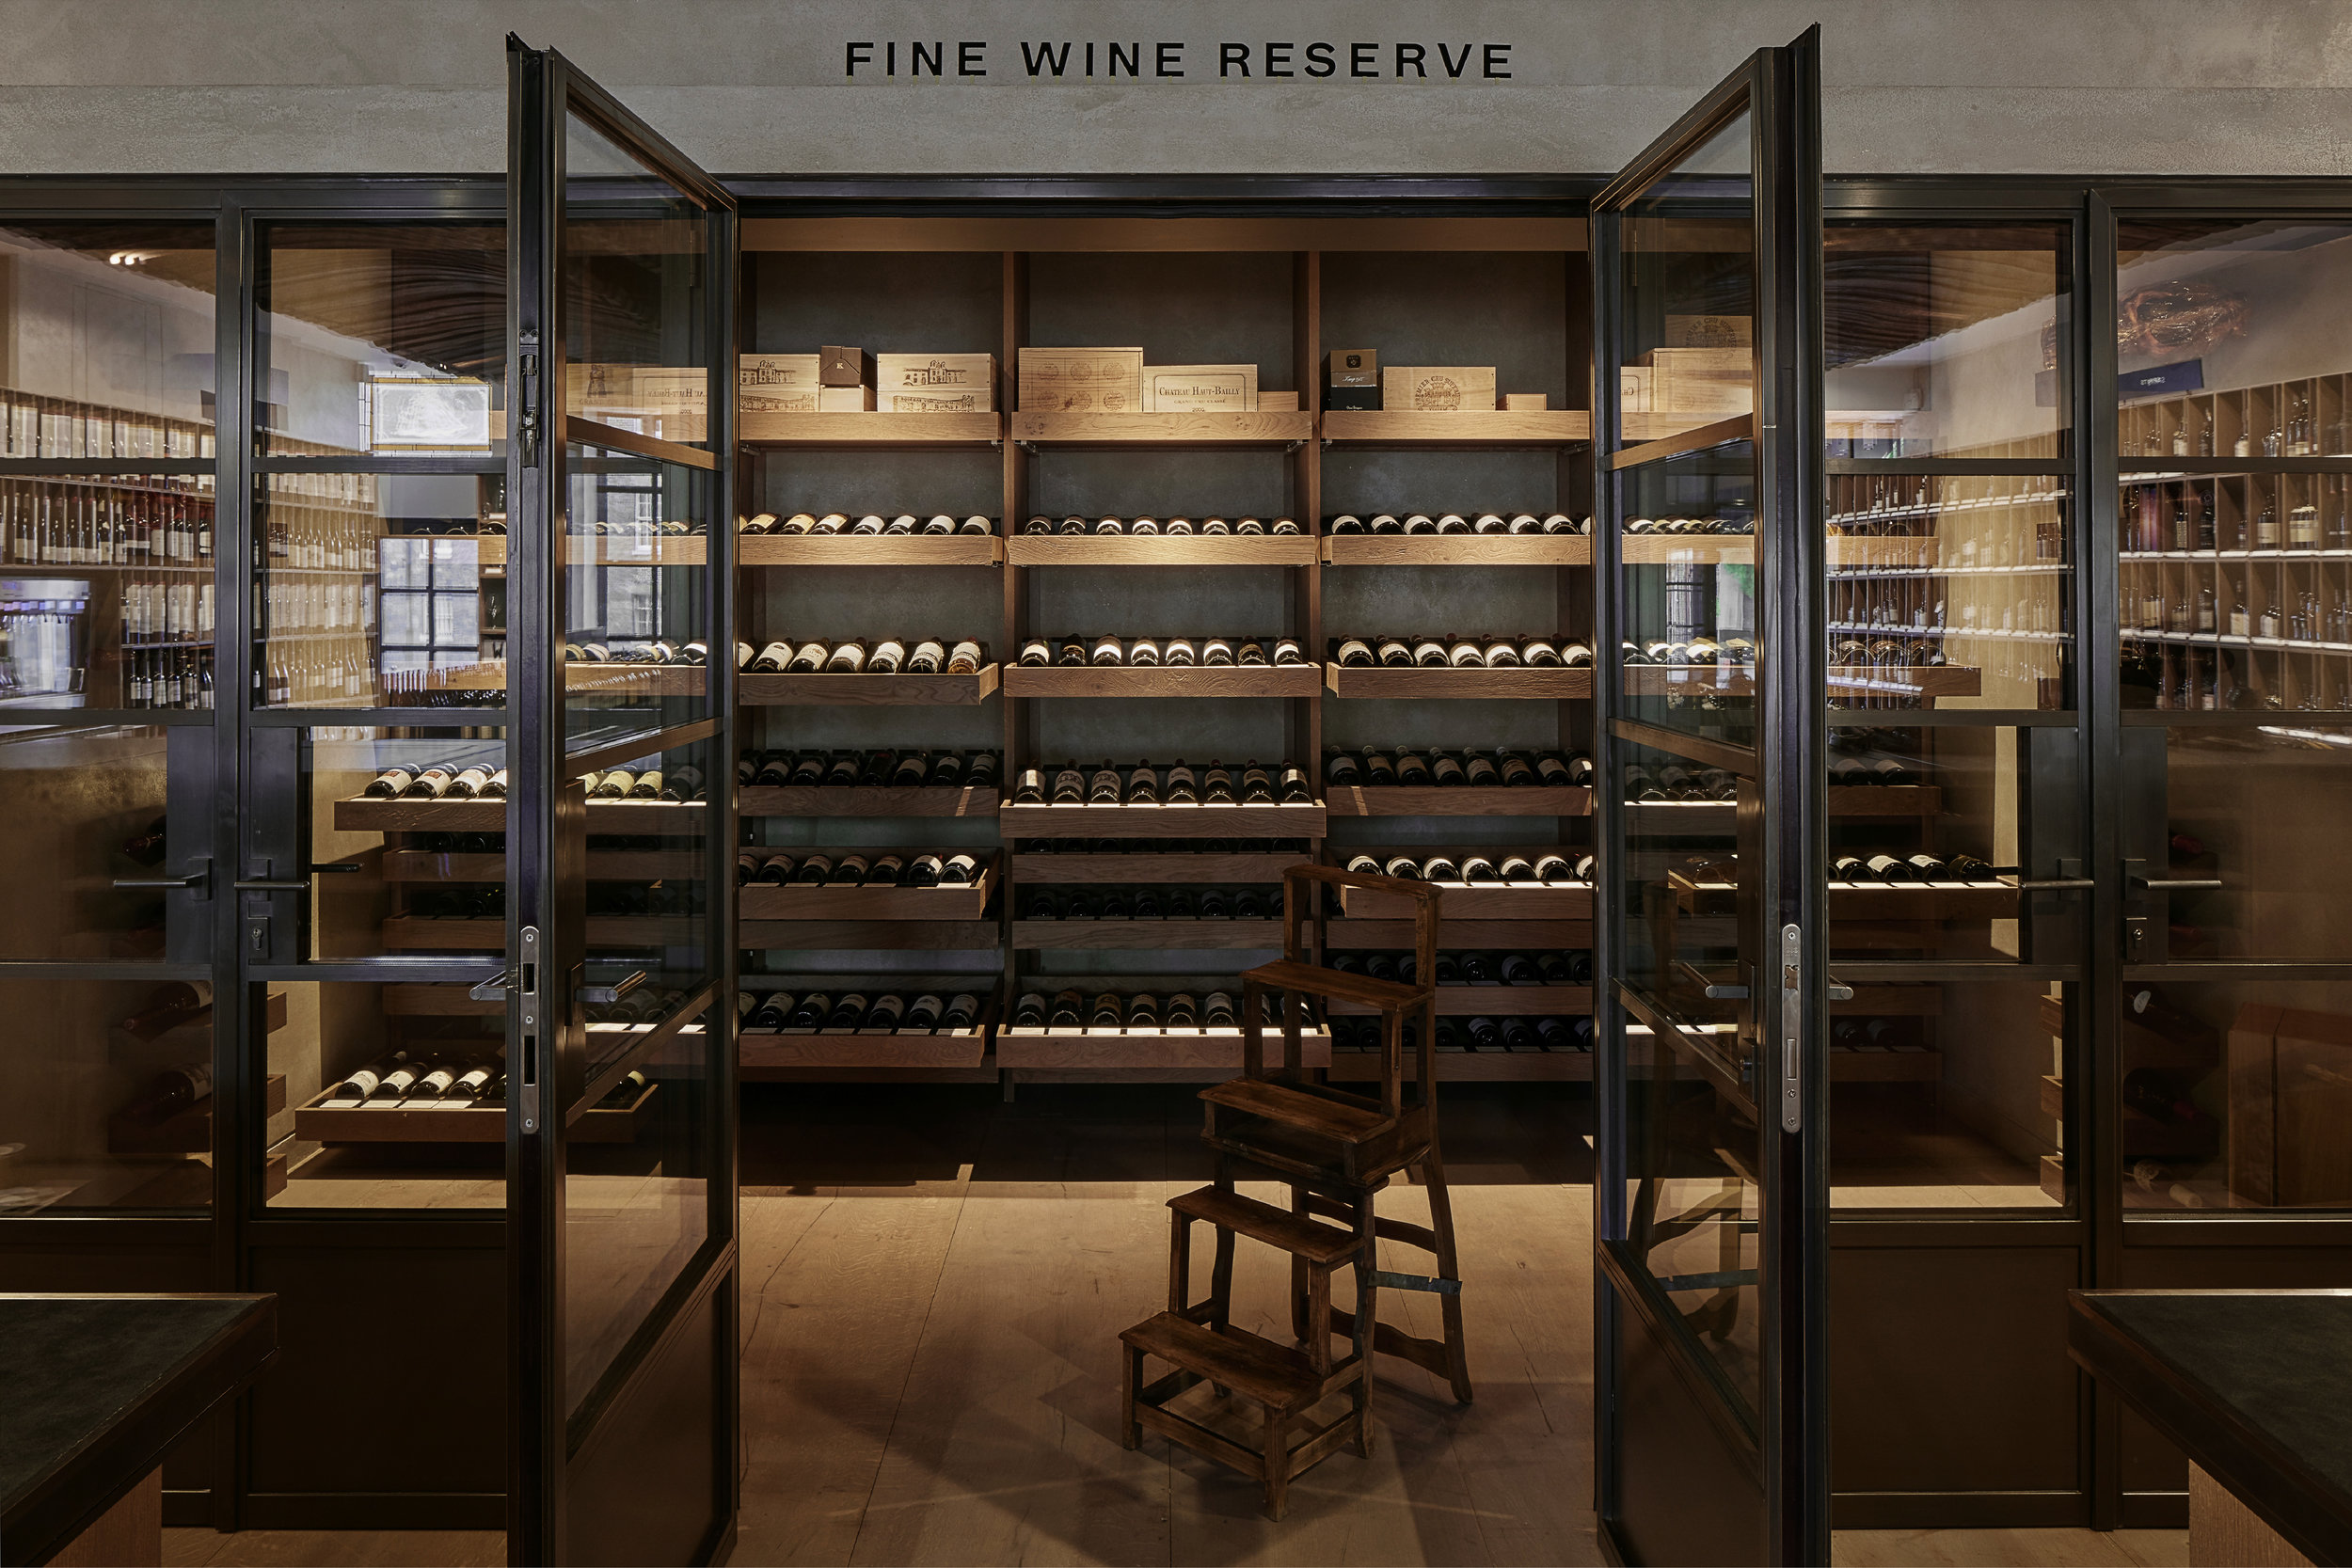 Photograph of Fine Wine Reserve at Berry Bros. and Rudd (BBR) Wine Shop